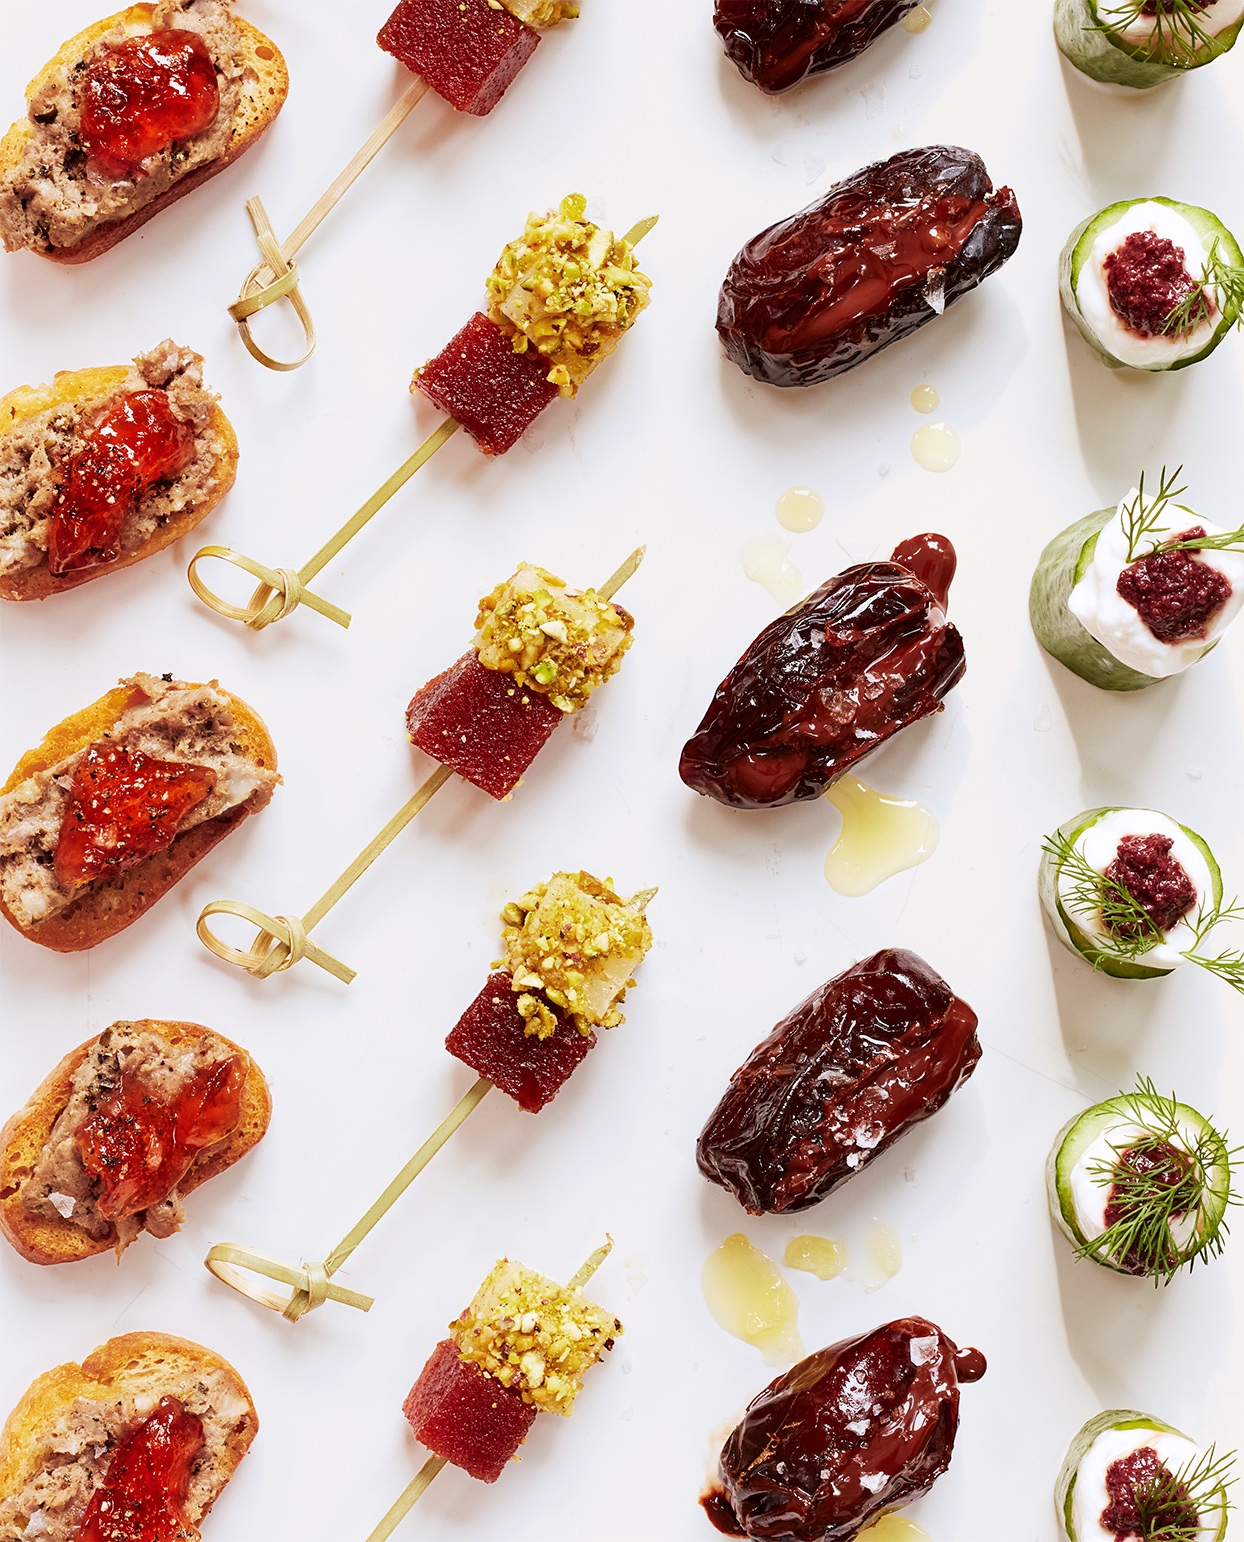 selection of holiday hors d'oeuvres